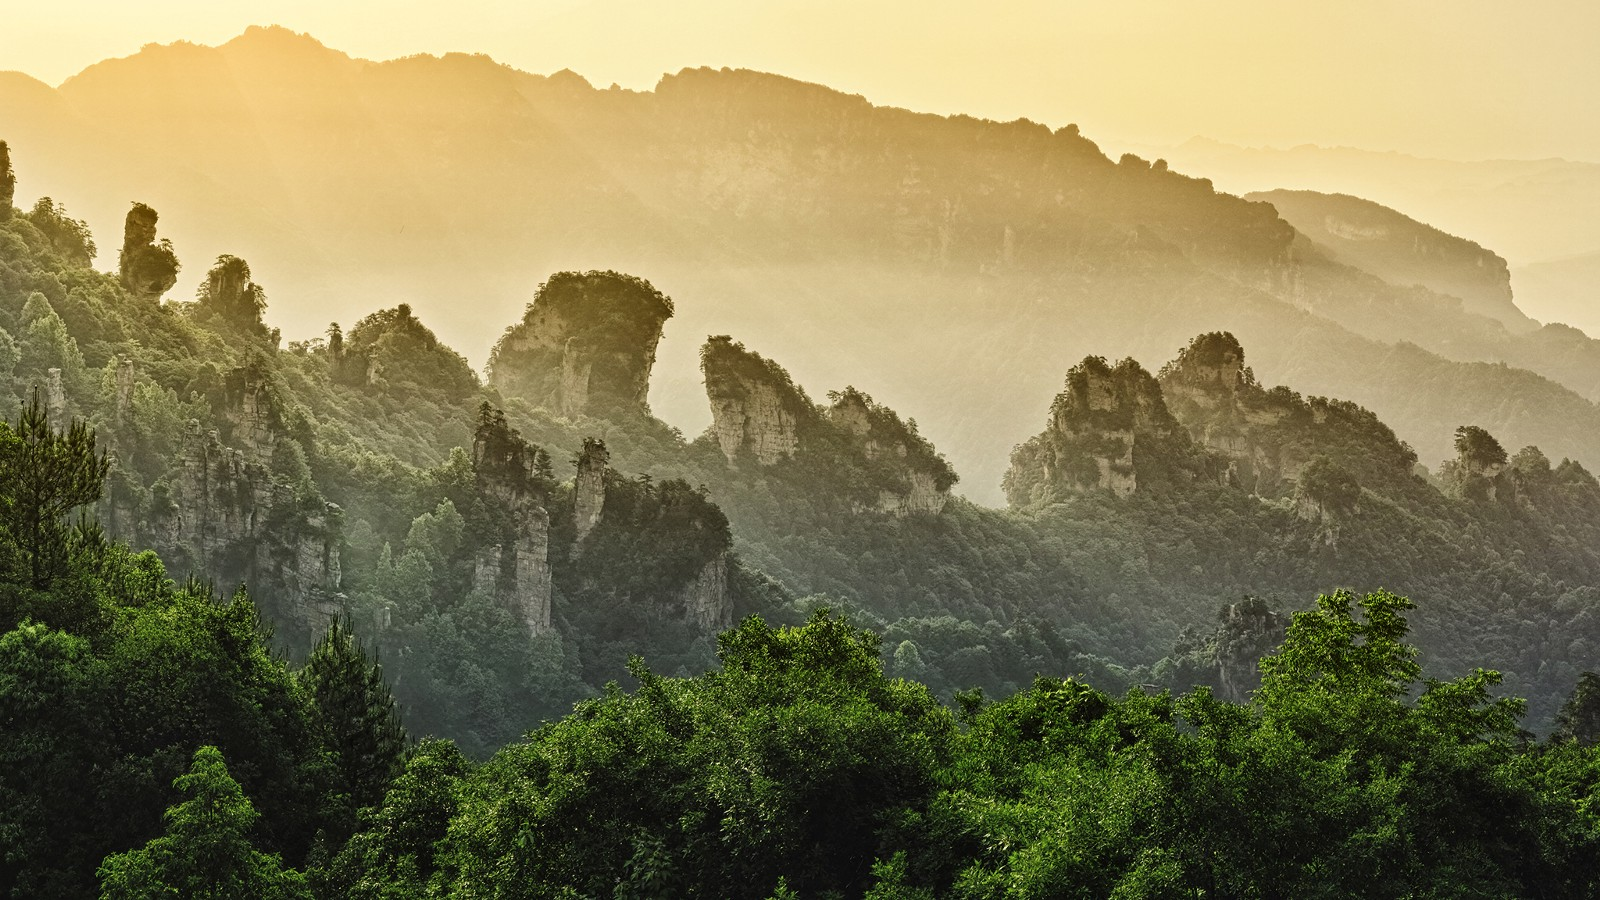 Sunrise at ZhangJiaJie National Park, China